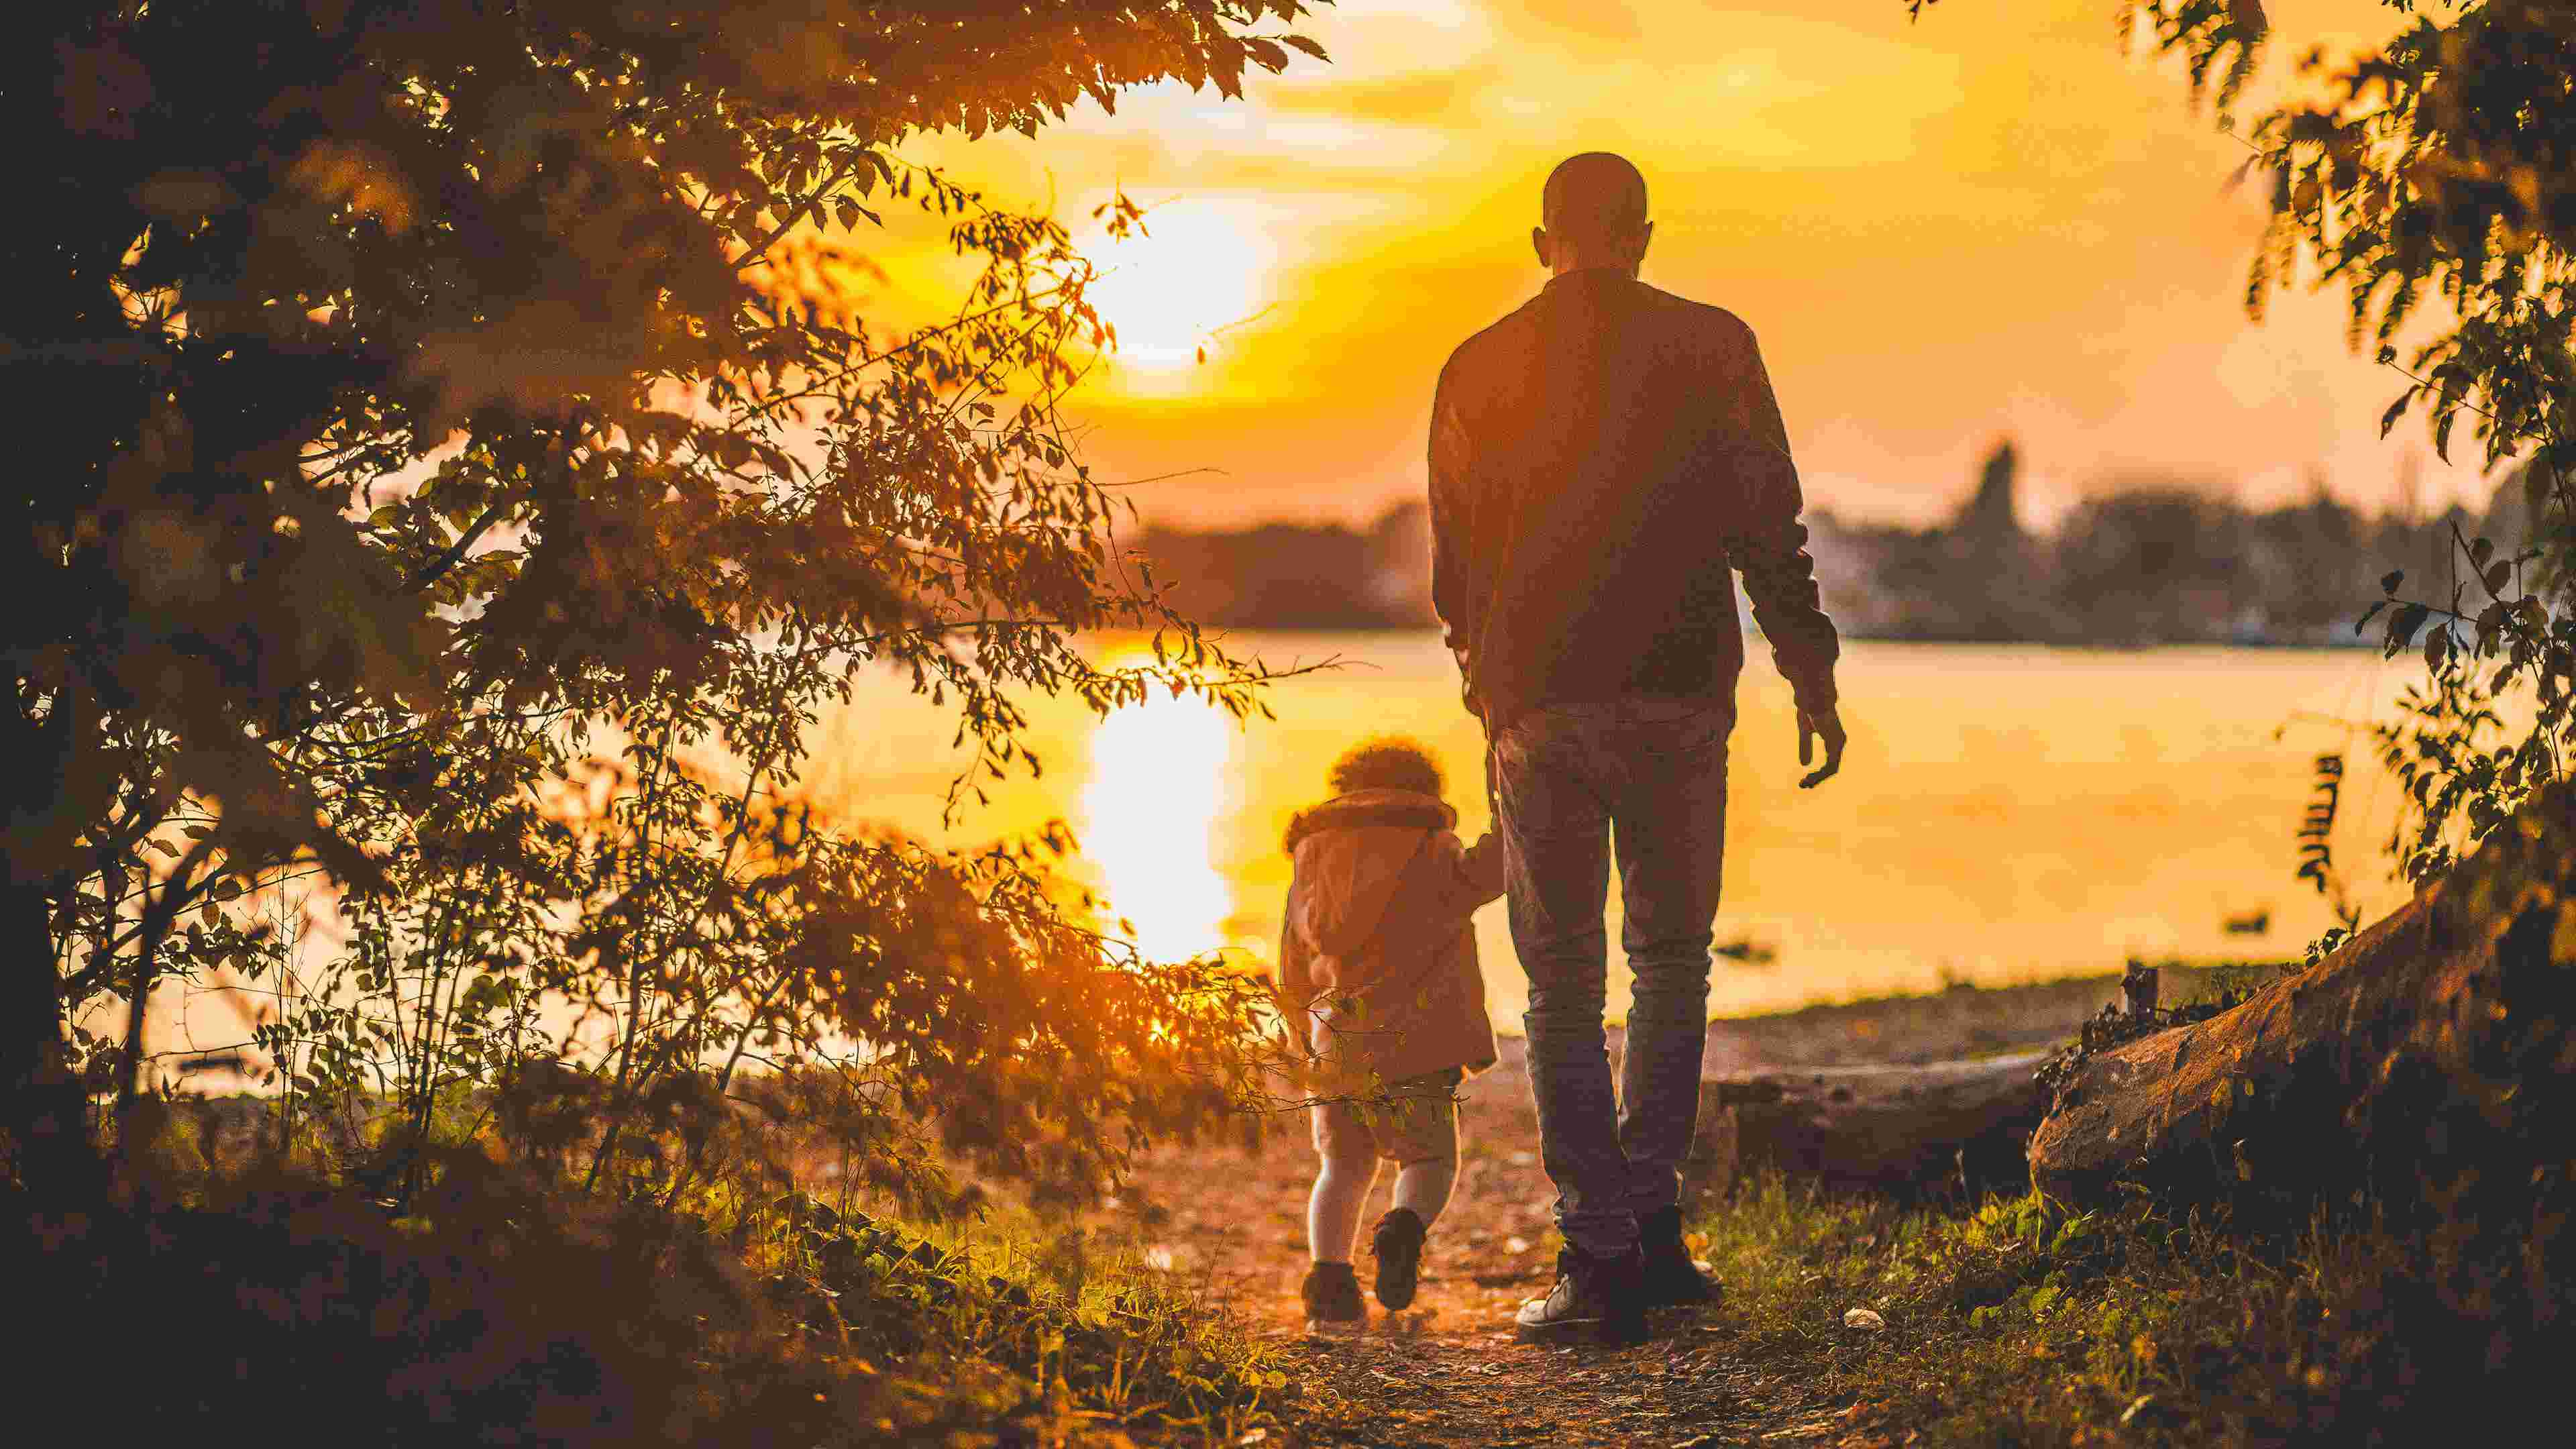 father-and-son-walking-by-the-lake-at-sunset-christian-stock-image%e5%ae%89%e5%bf%83%e3%81%97%e3%81%a6%e8%a1%8c%e3%81%8d%e3%81%aa%e3%81%95%e3%81%84